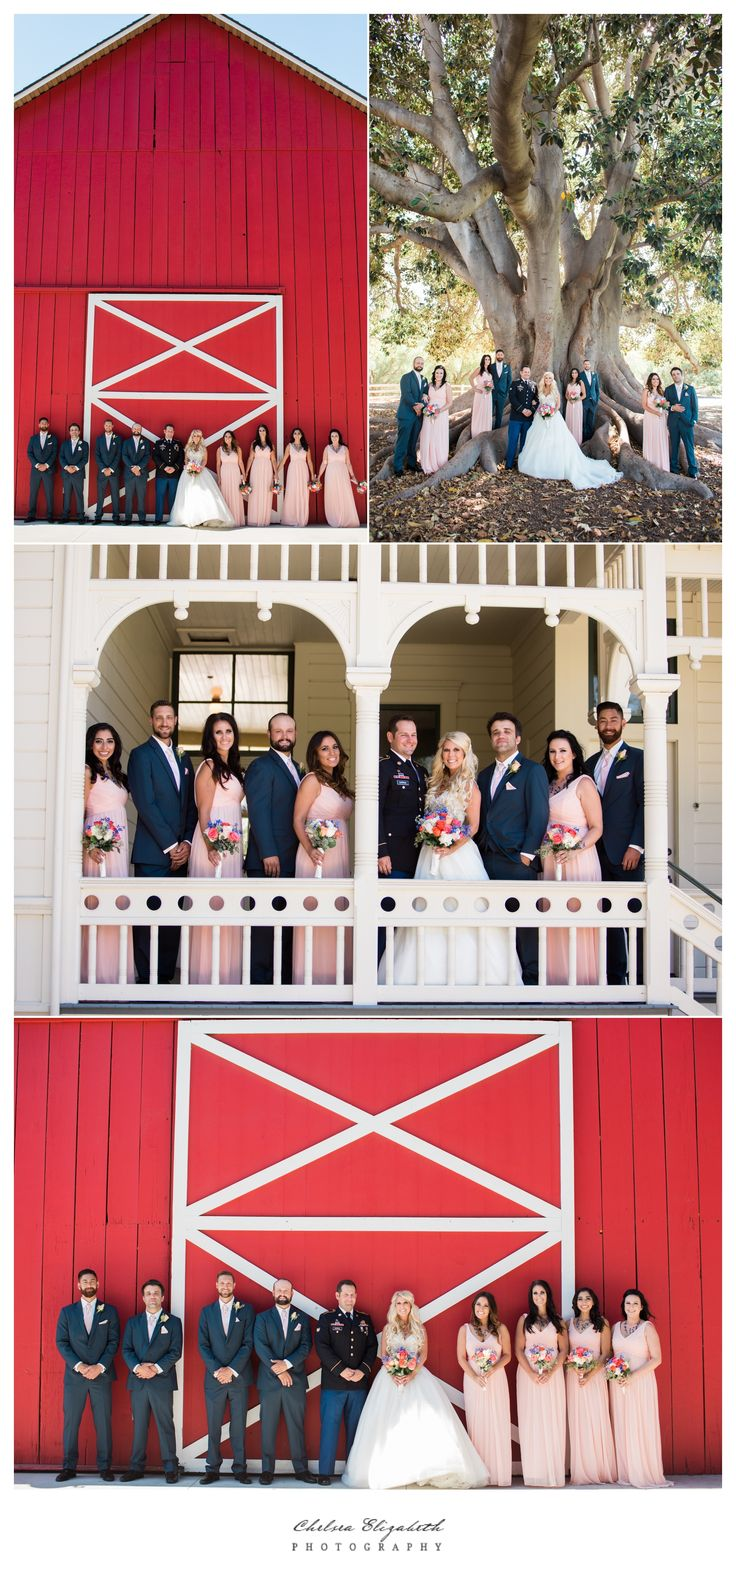 Camarillo Ranch Weddings in Camarillo, Ca @camarilloranch @Chelsea Elizabeth Photography ranch wedding in Camarillo, California. Ventura County. Country Chic, Barn Photos, Bride and Groom. Bridal Party.